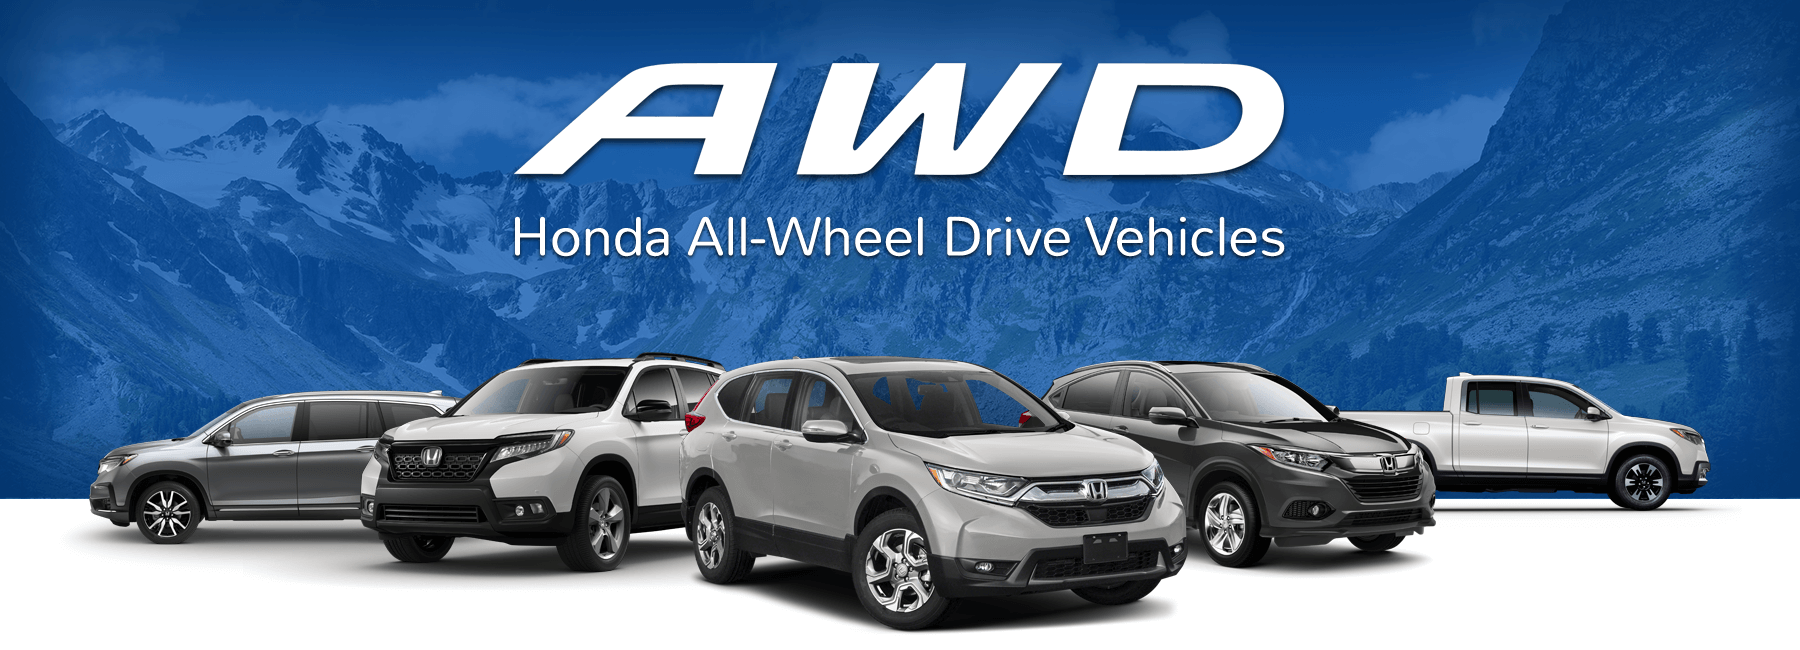 Honda All-Wheel Drive Lineup Slider